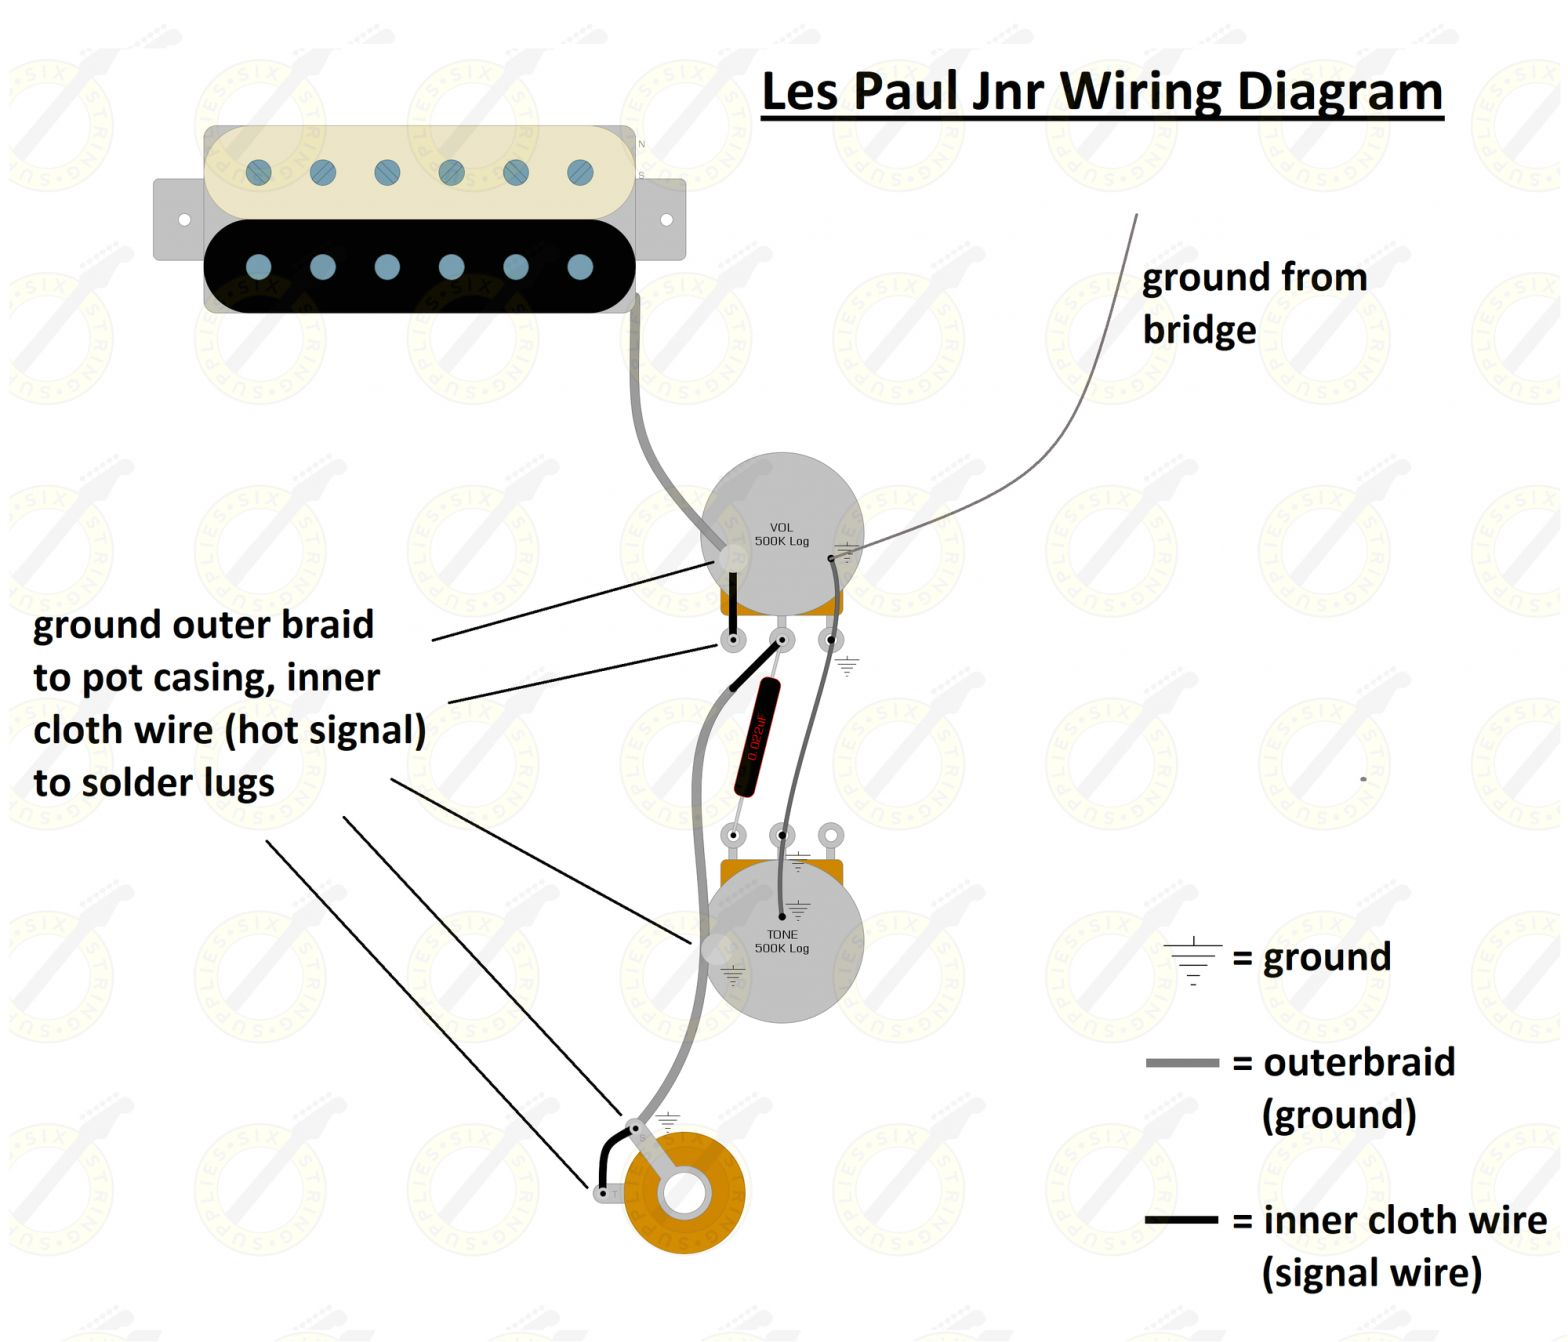 Les Paul Jr Wiring Diagram Image Of Les Paul Junior Wiring Kit